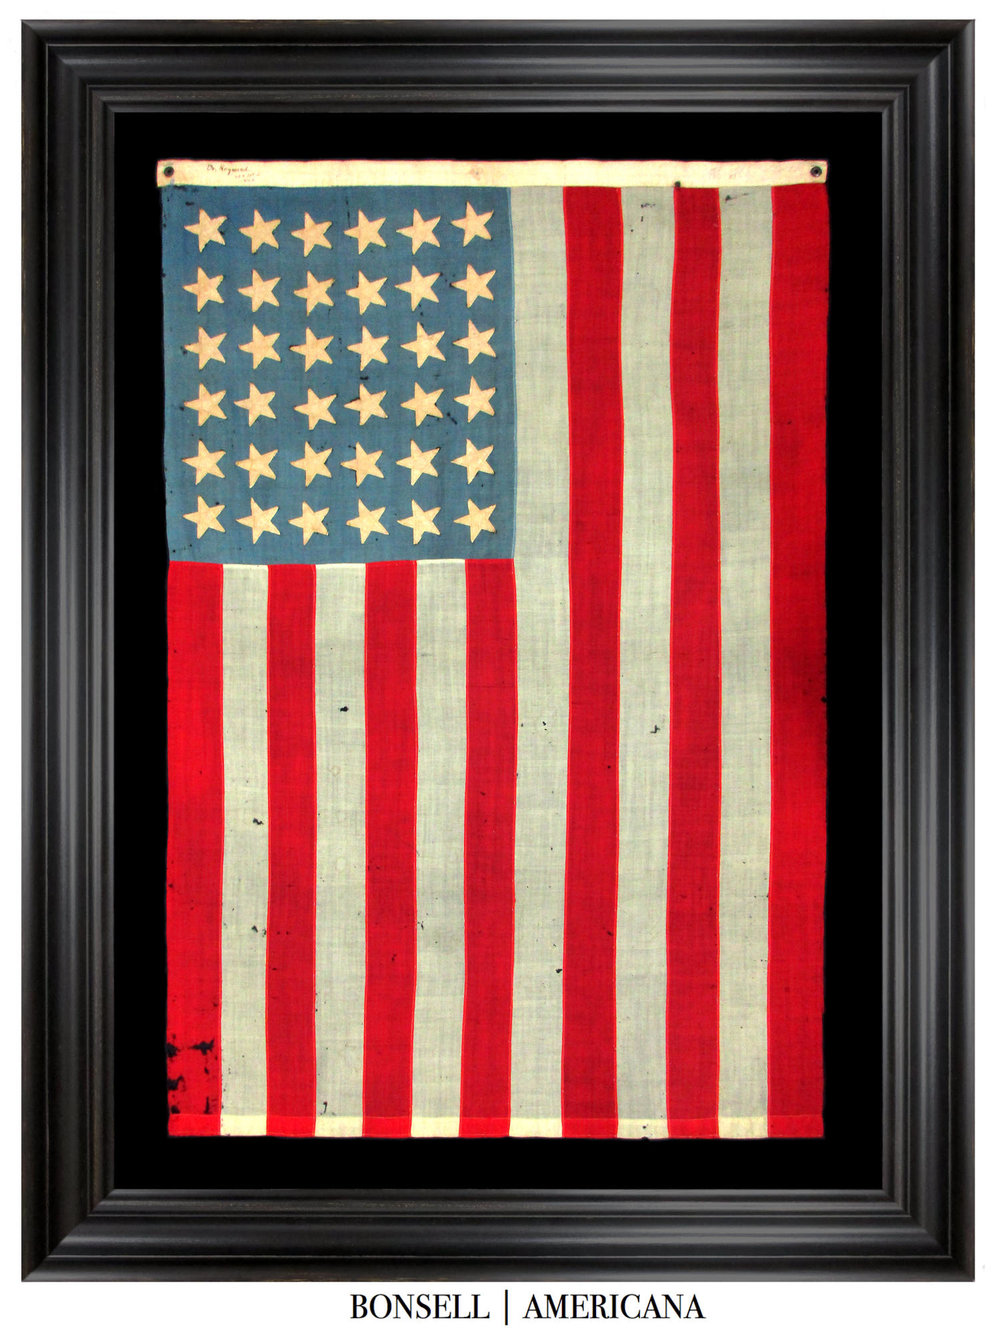 36 Star Antique American Flag Owned by Dr. Raymond